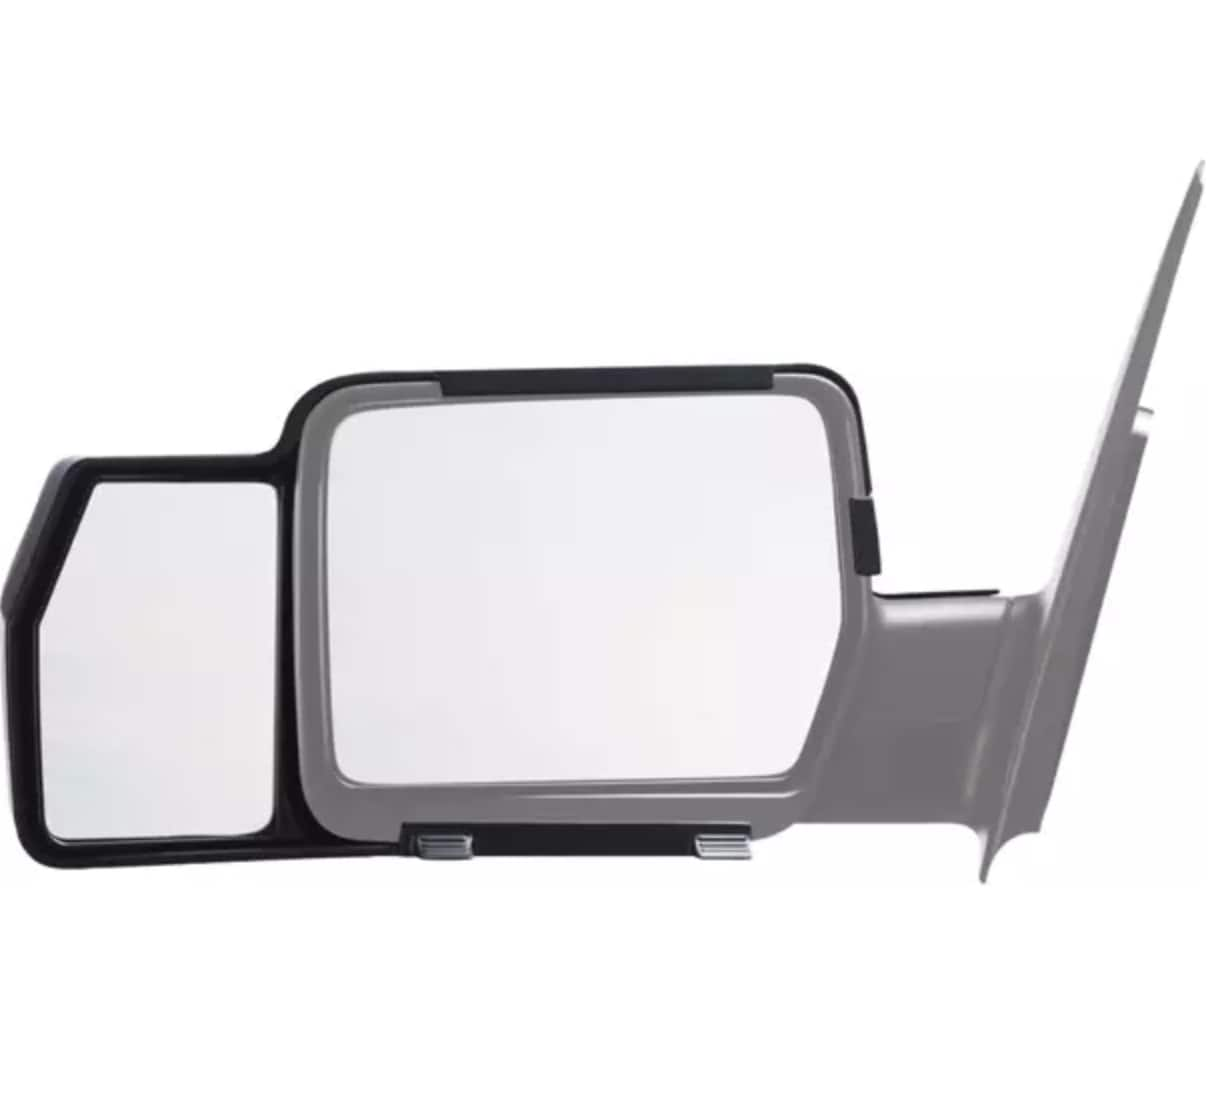 2-pack K-Source Custom Towing Mirrors $15.77 + Free store pickup at Bass Pro Shops